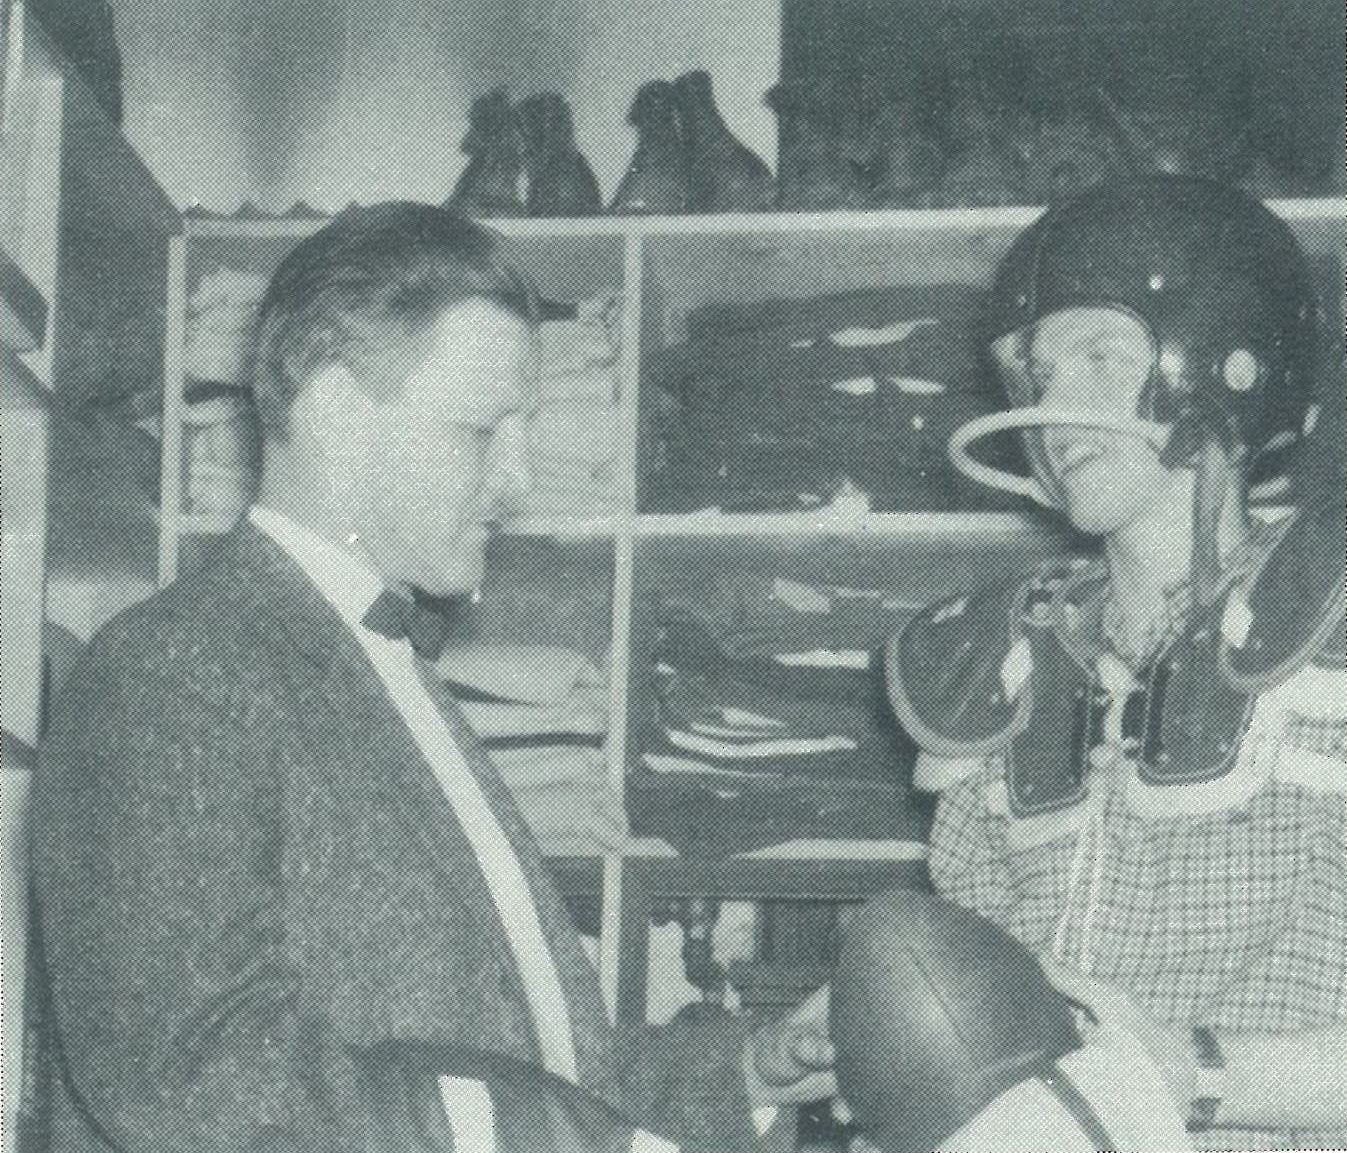 Coach Werdal passes out equipment to G.T. Gunhus to start the 1958 season.